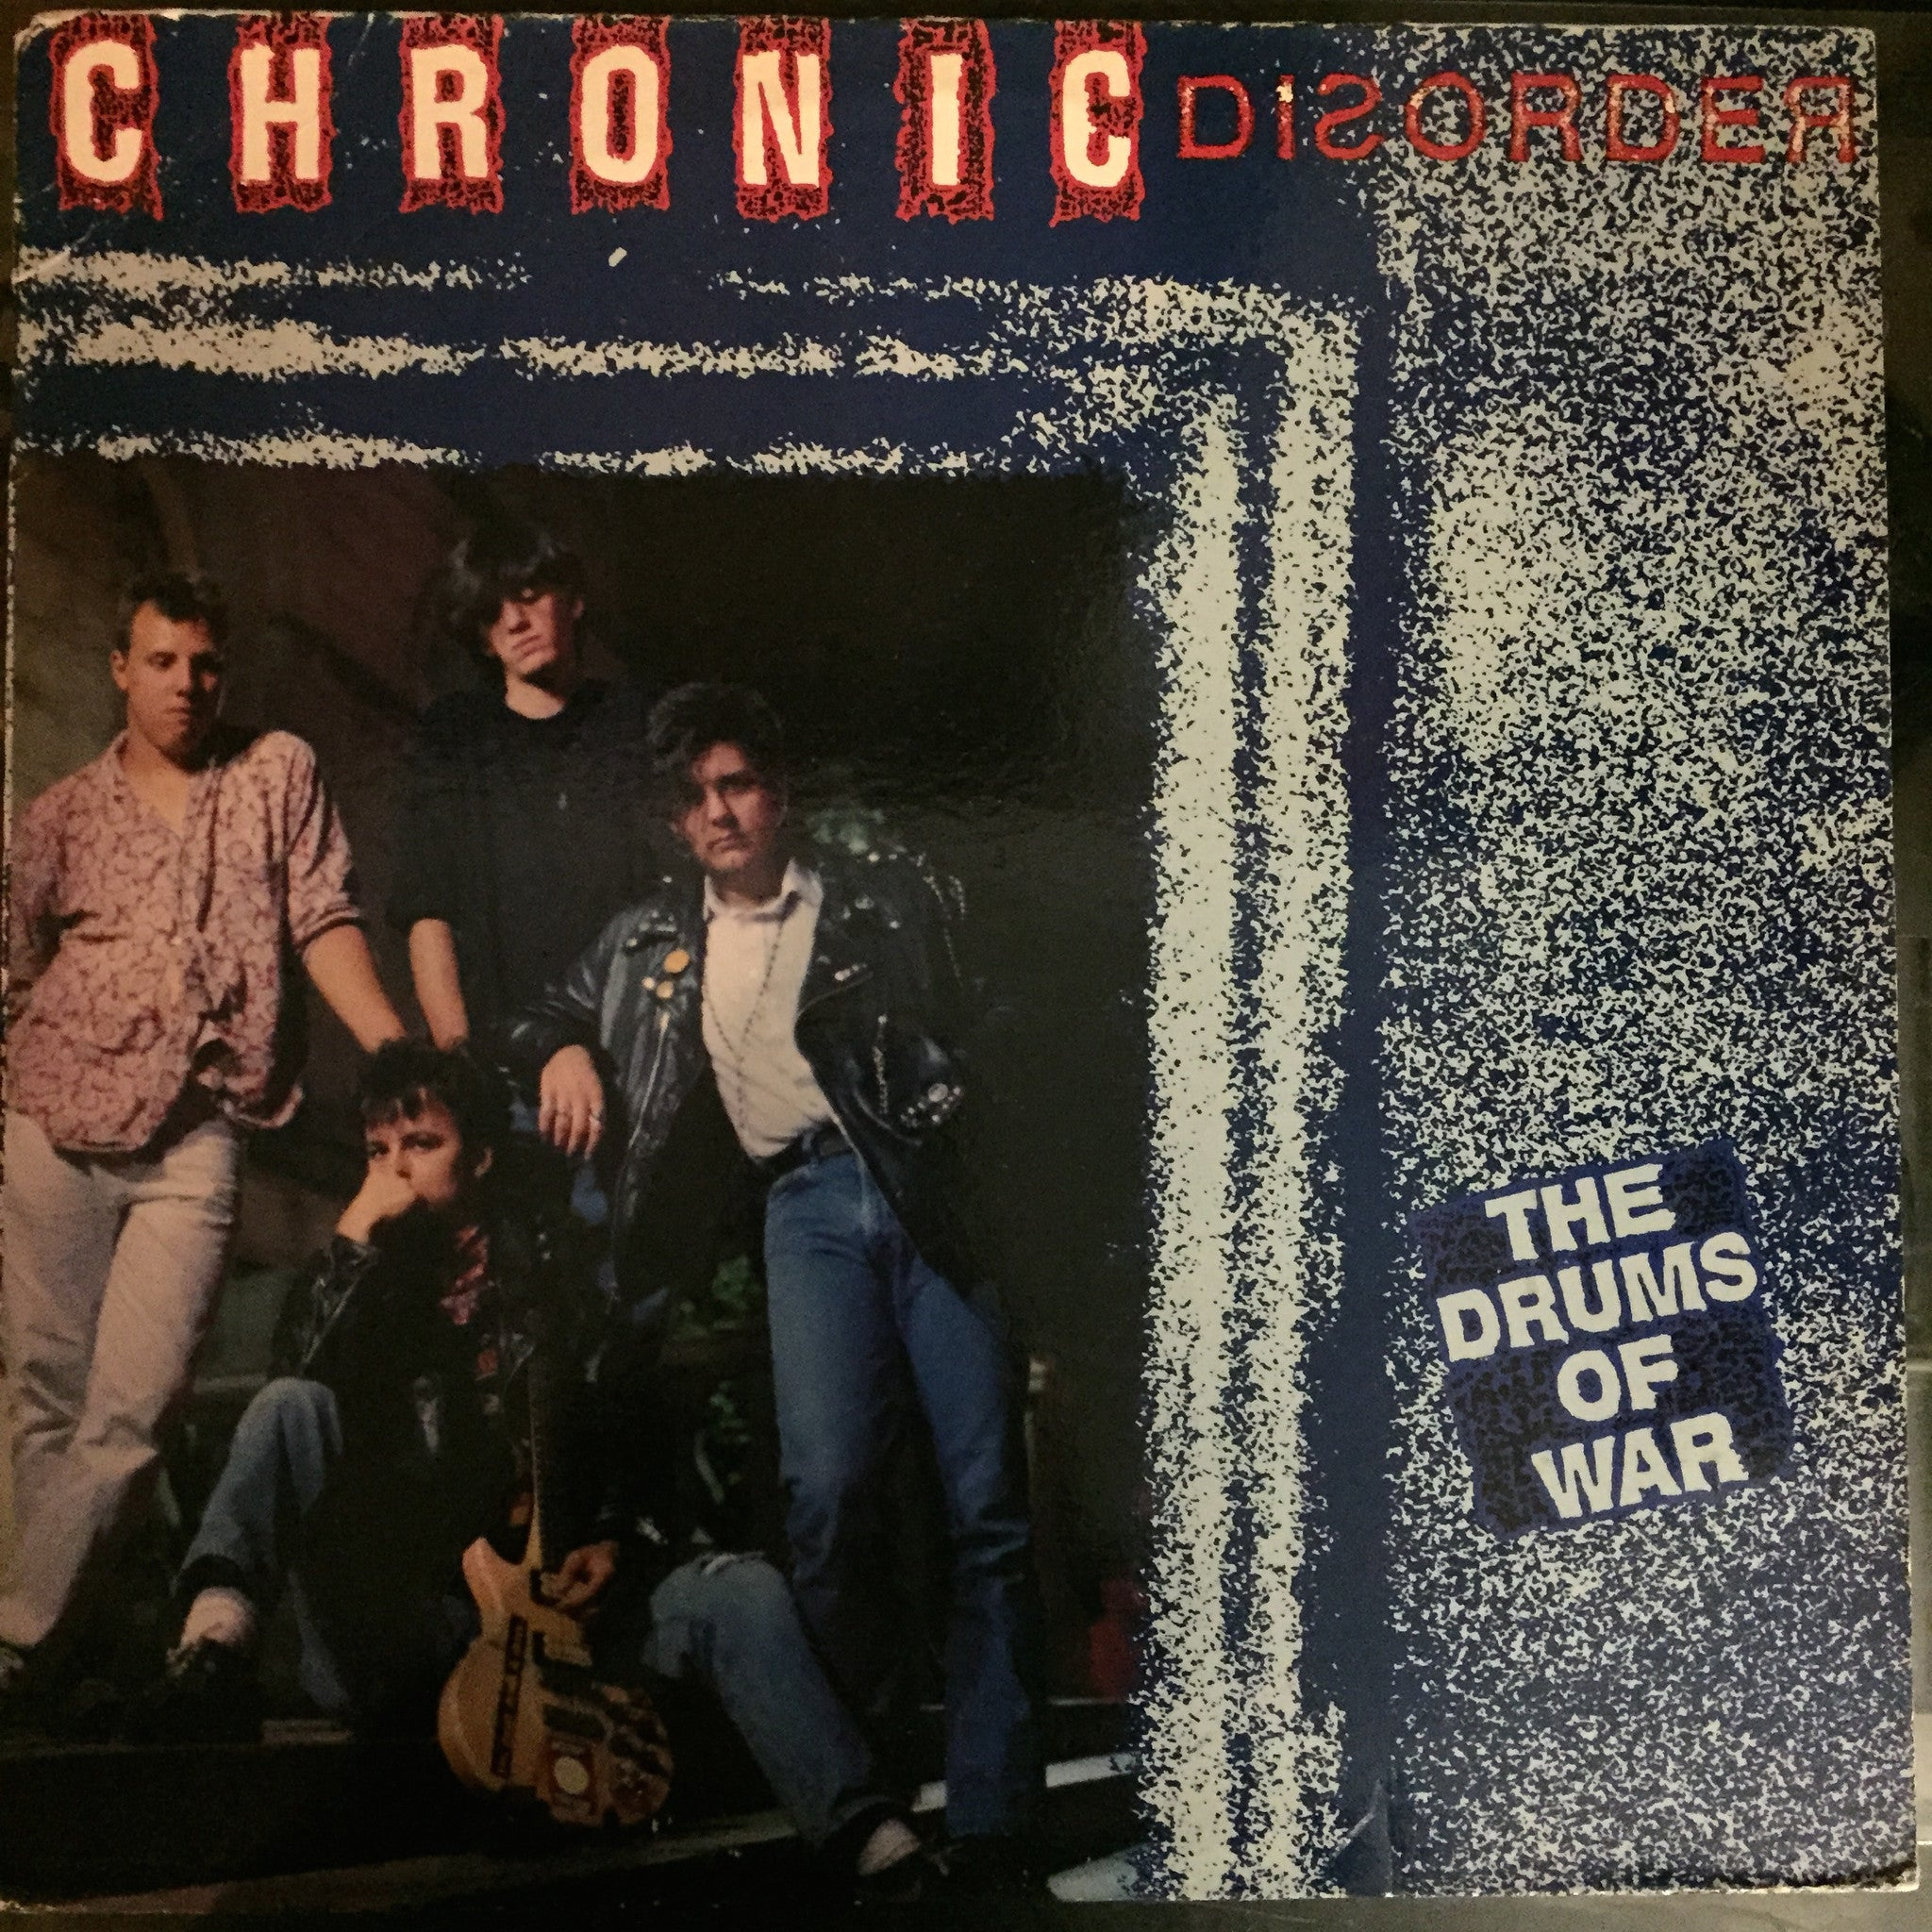 Chronic Disorder - The Drums of War LP (PBS 154)